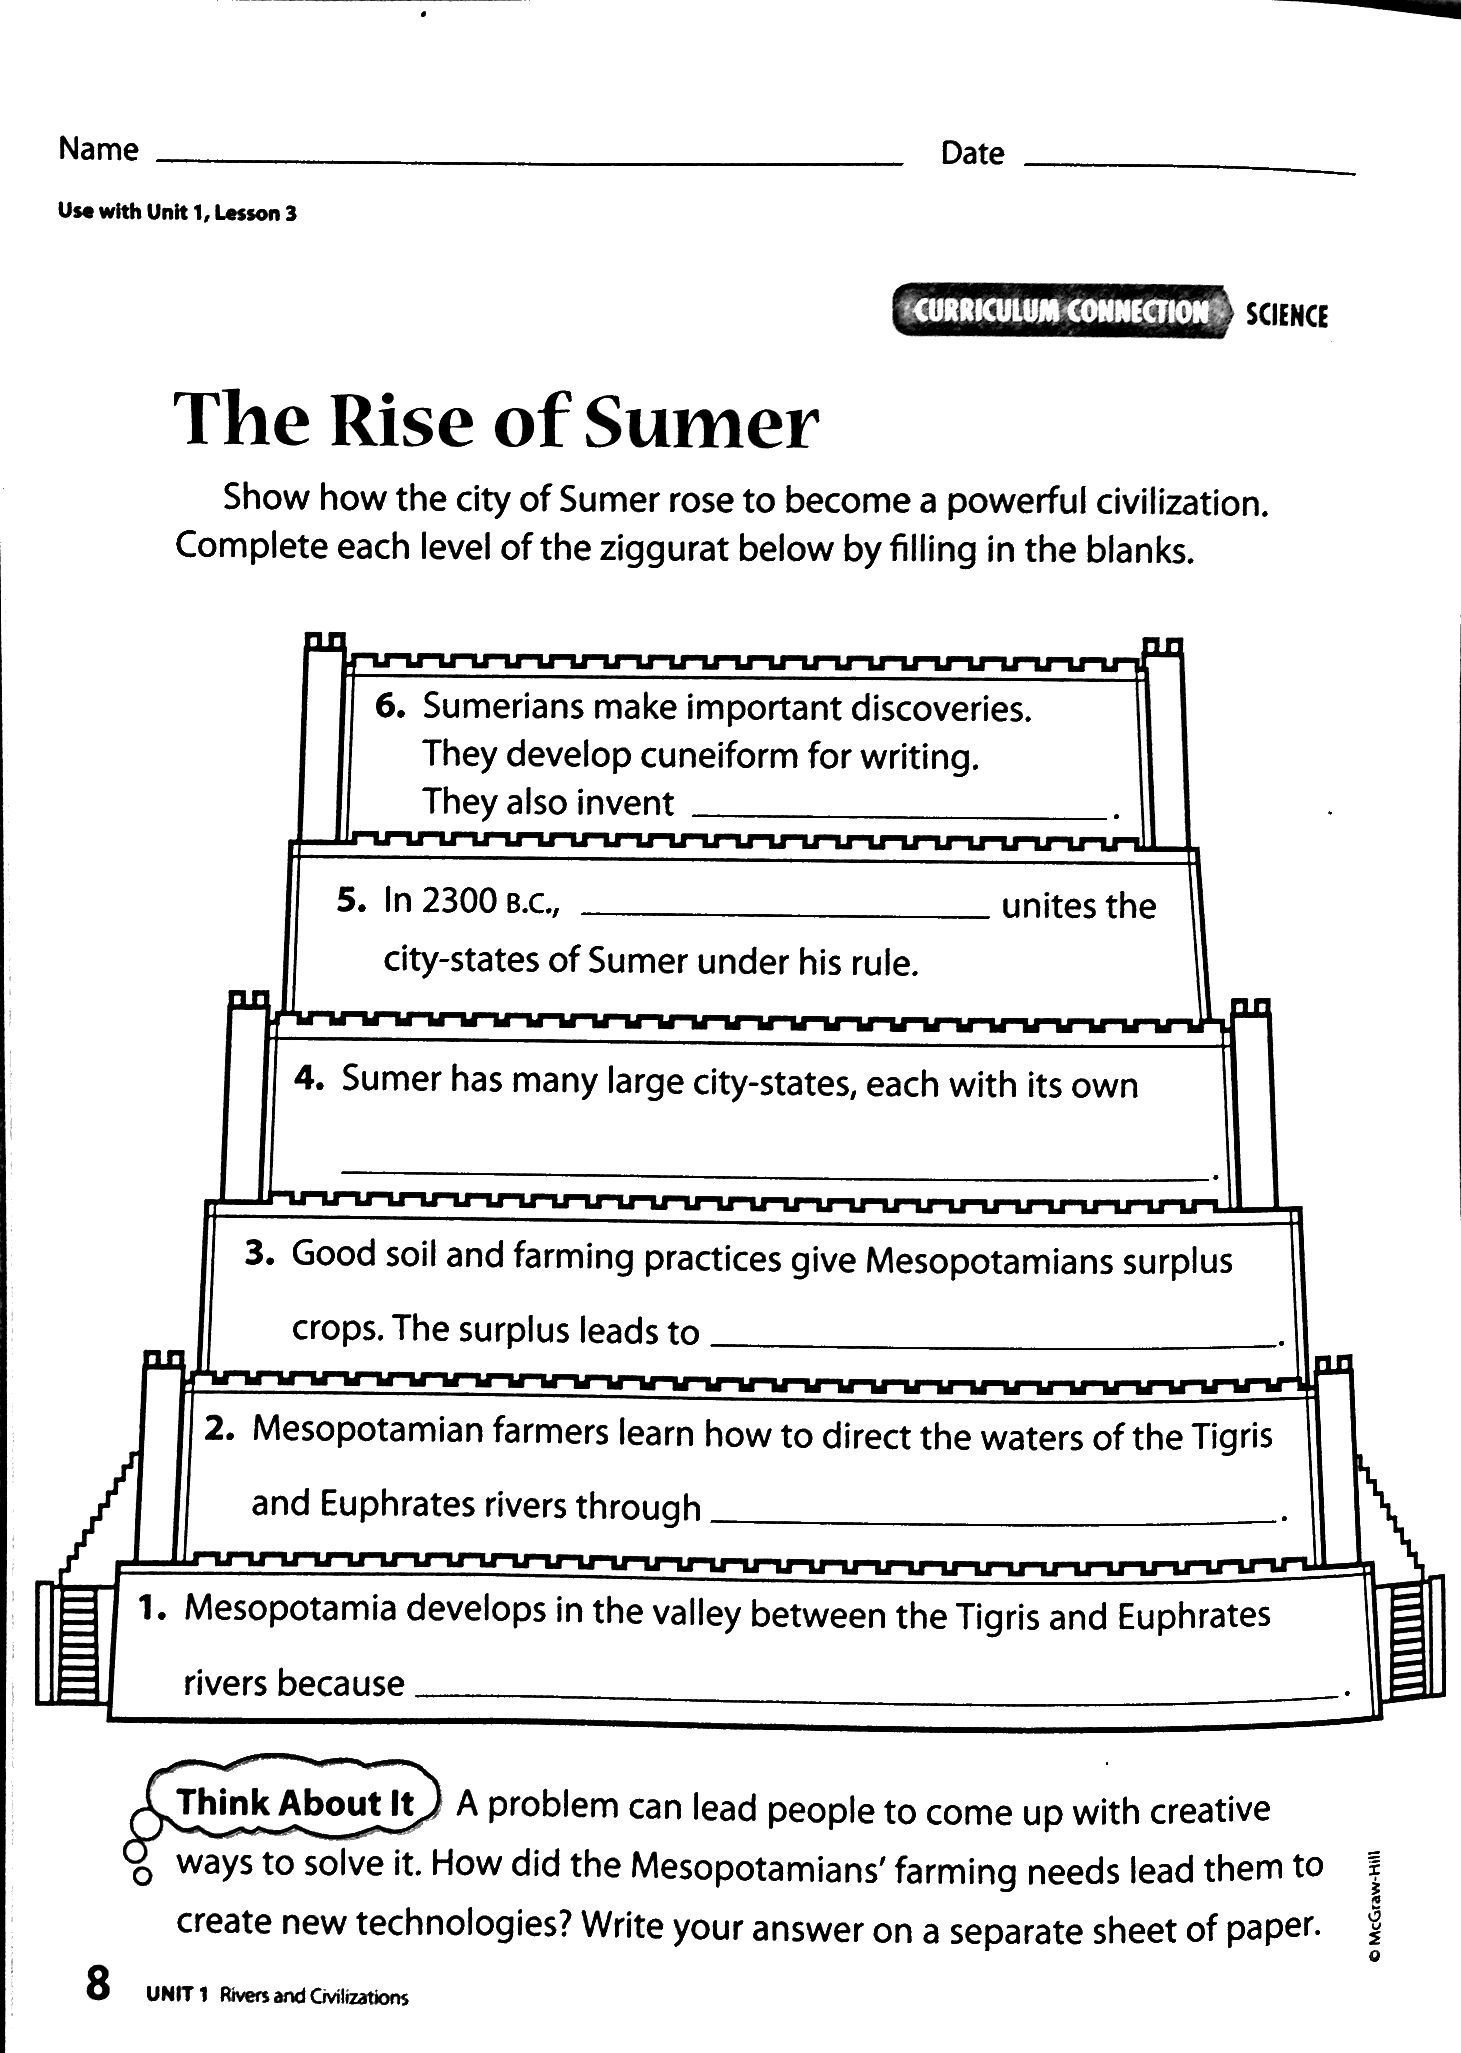 Image Result For Sumerians Math